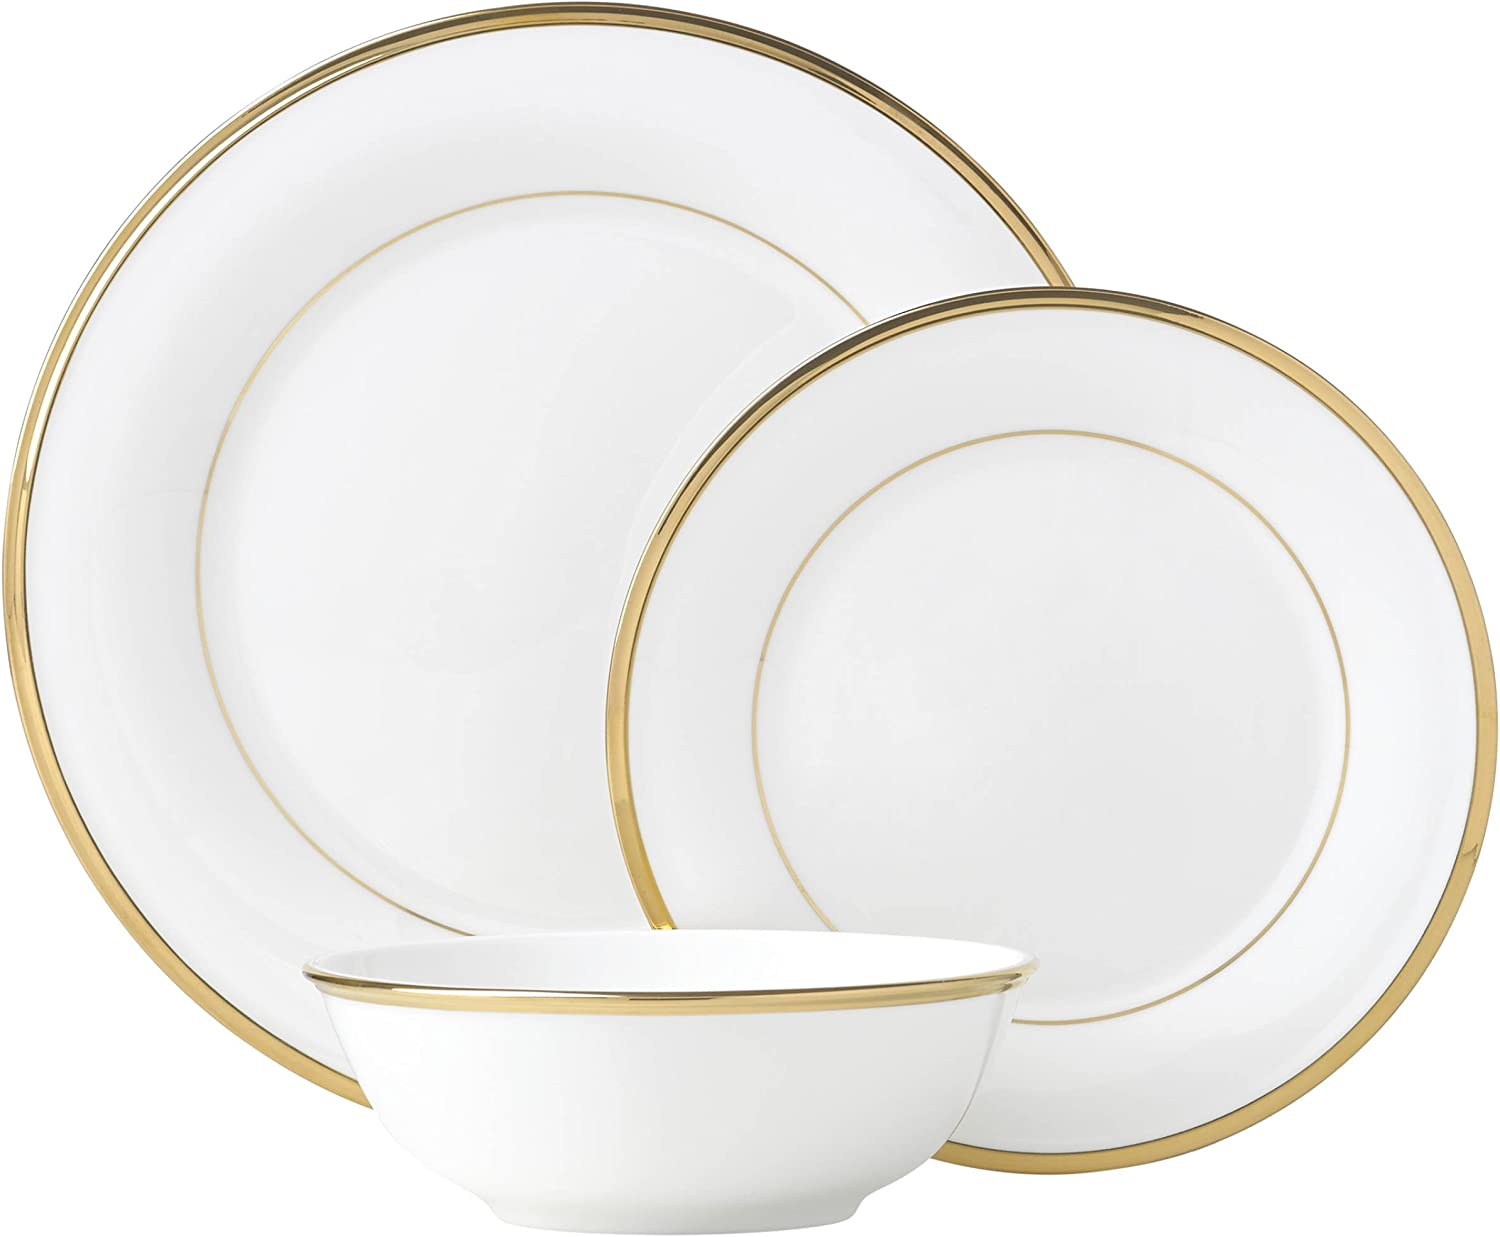 Lenox White Eternal 3-Piece Place Setting, 3.9 LB